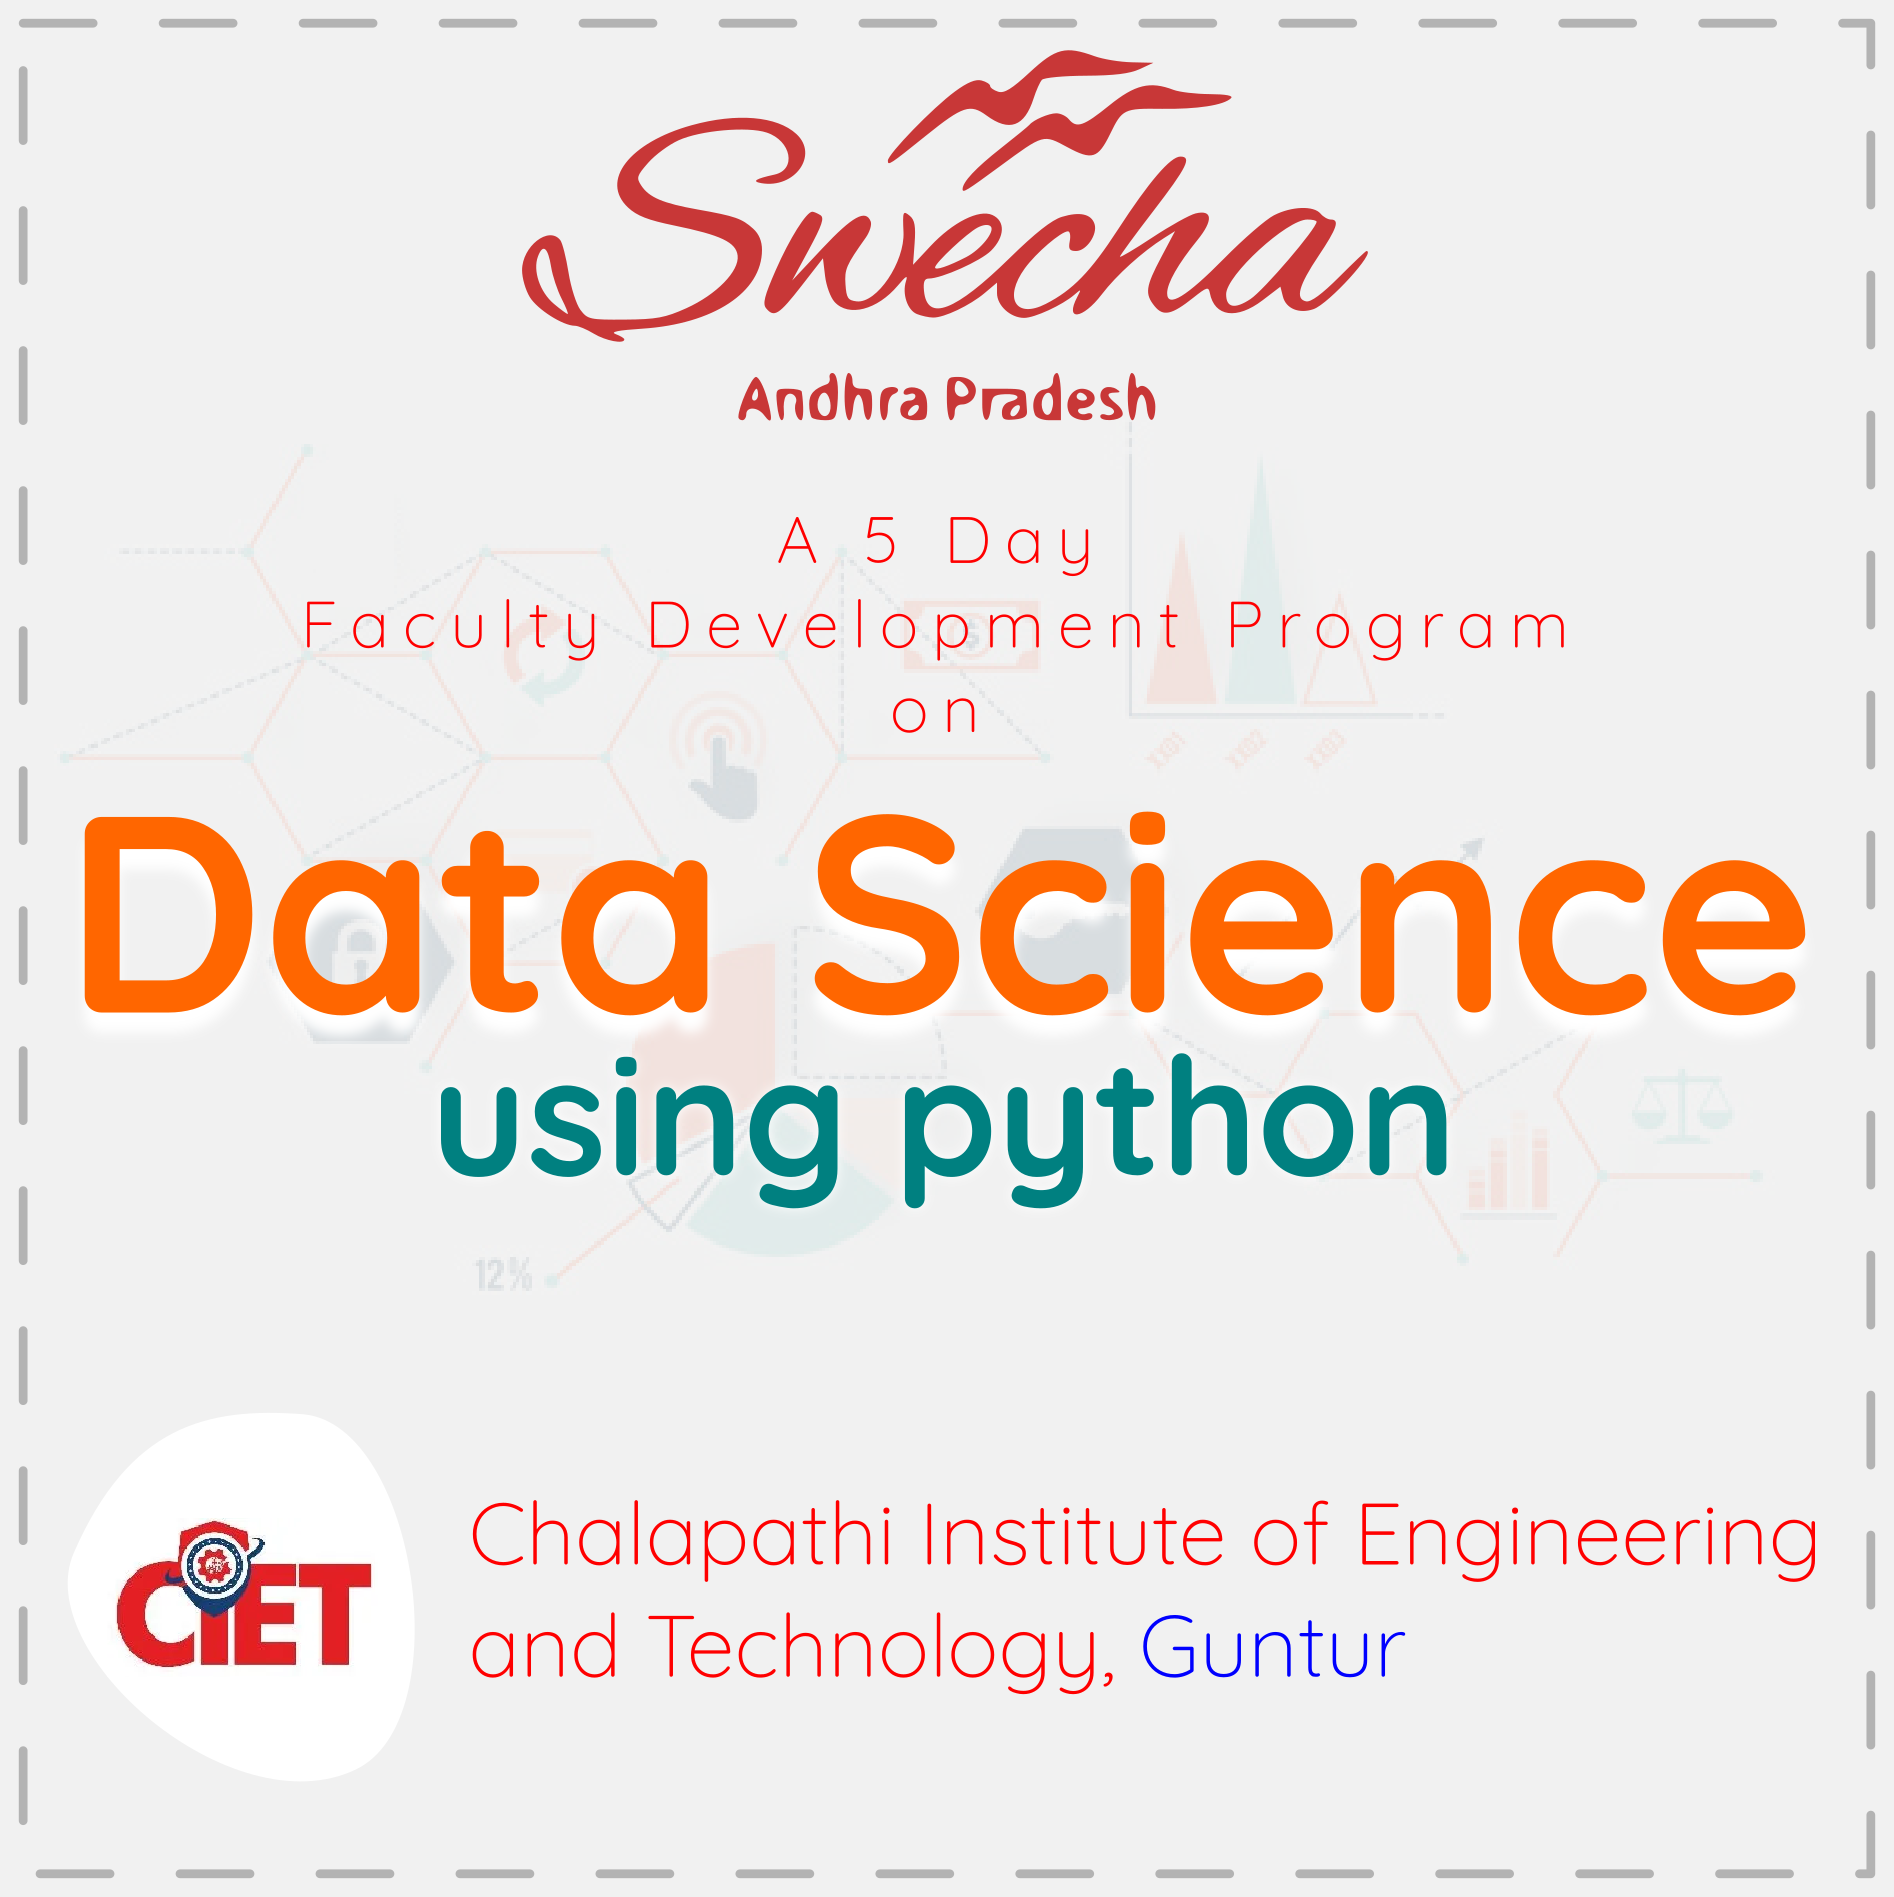 Data Science Using Python - FDP - CIET